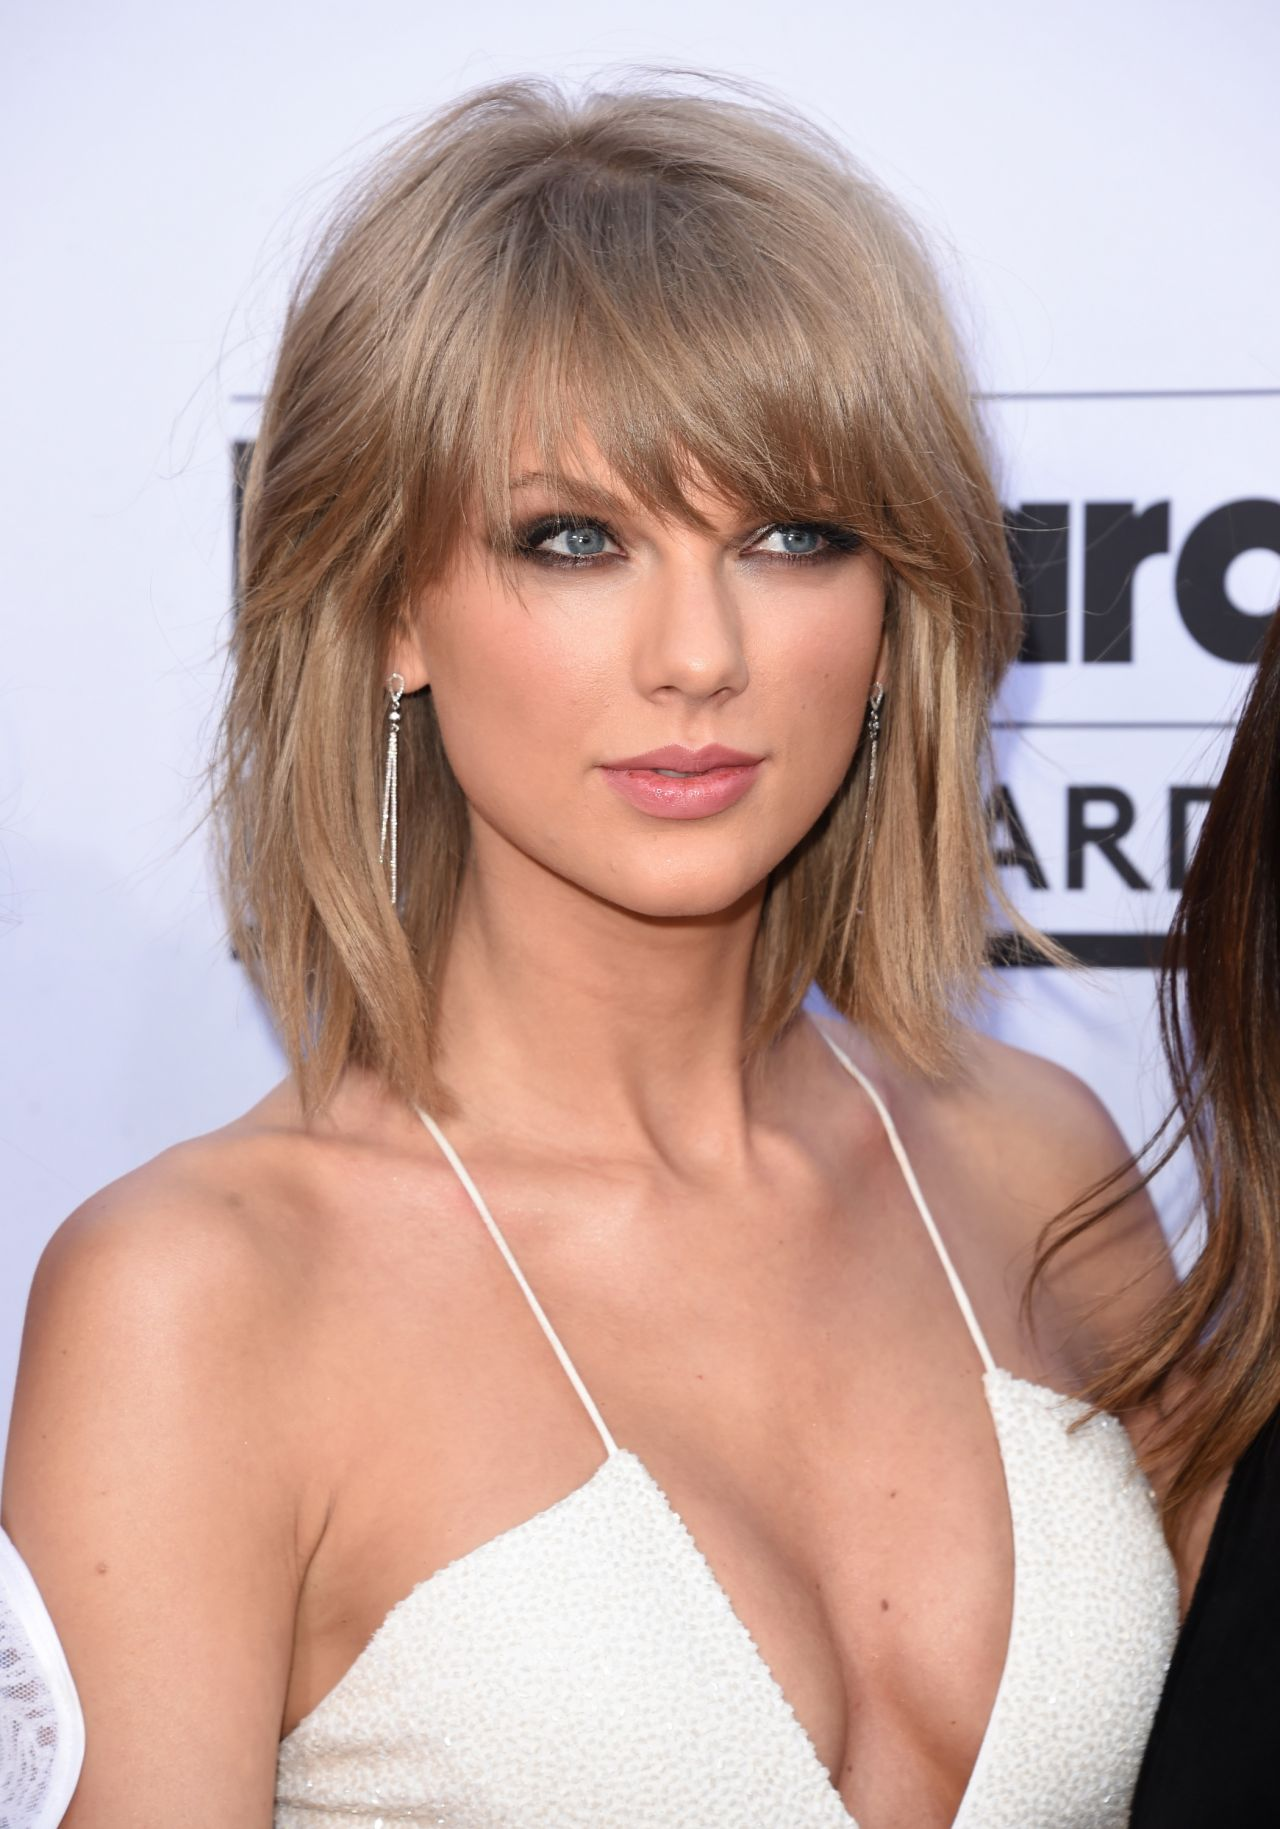 Taylor Swift Style Clothes Outfits And Fashion Celebmafia Over the time it has been ranked as high as 17 299 in the world, while most of its traffic comes from india, where it reached as high as 9 353 position. taylor swift style clothes outfits